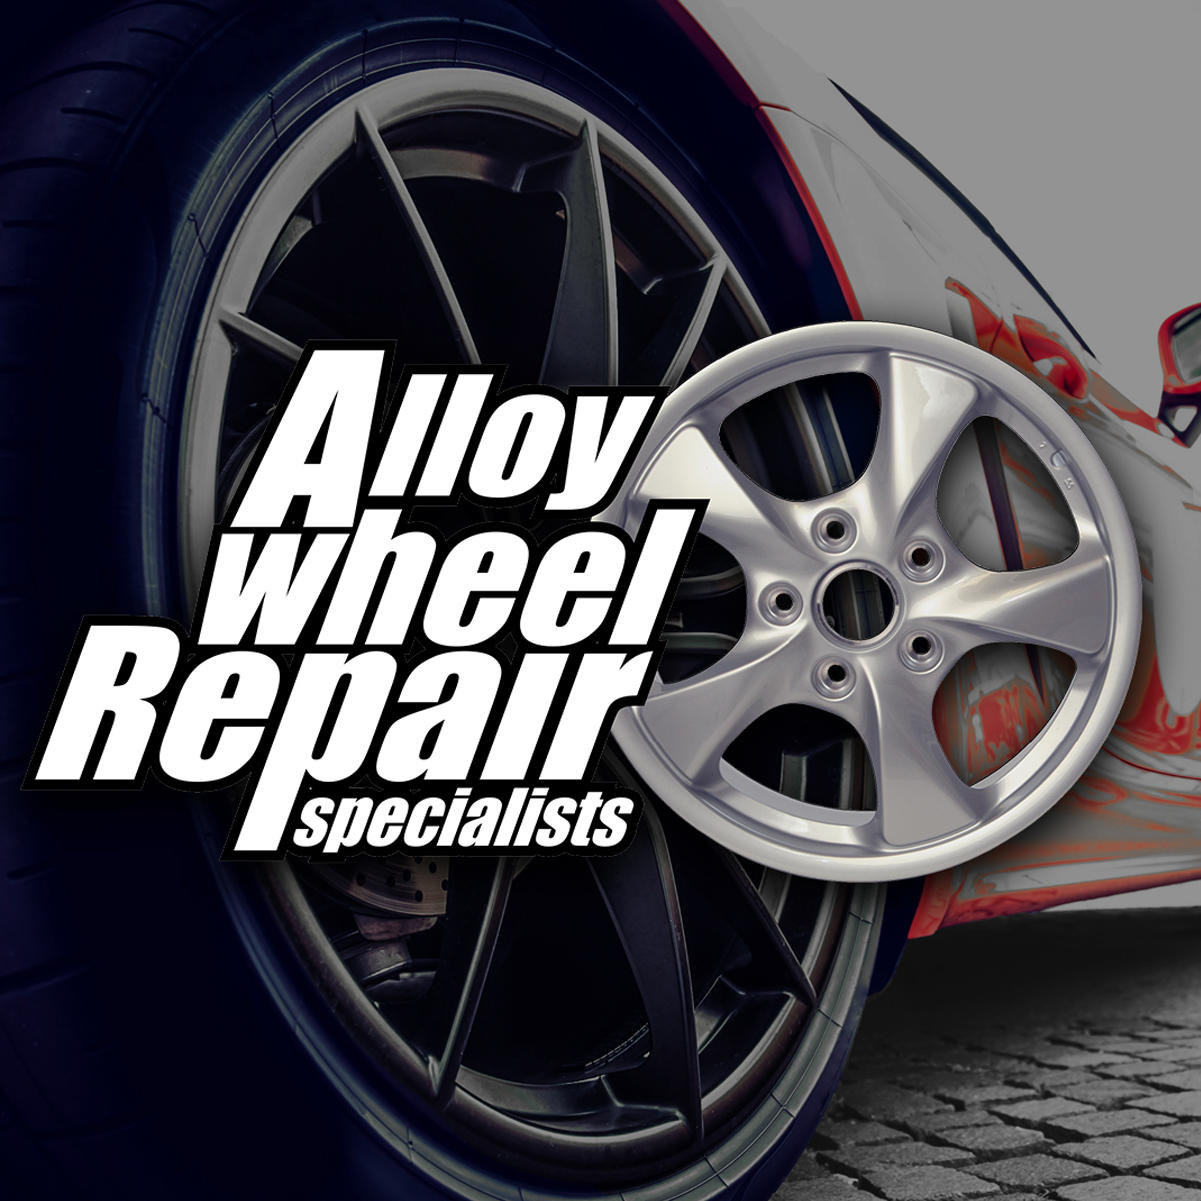 Alloy Wheel Repair Specialists of Scranton - Dimock, PA 18816 - (570)877-2071 | ShowMeLocal.com